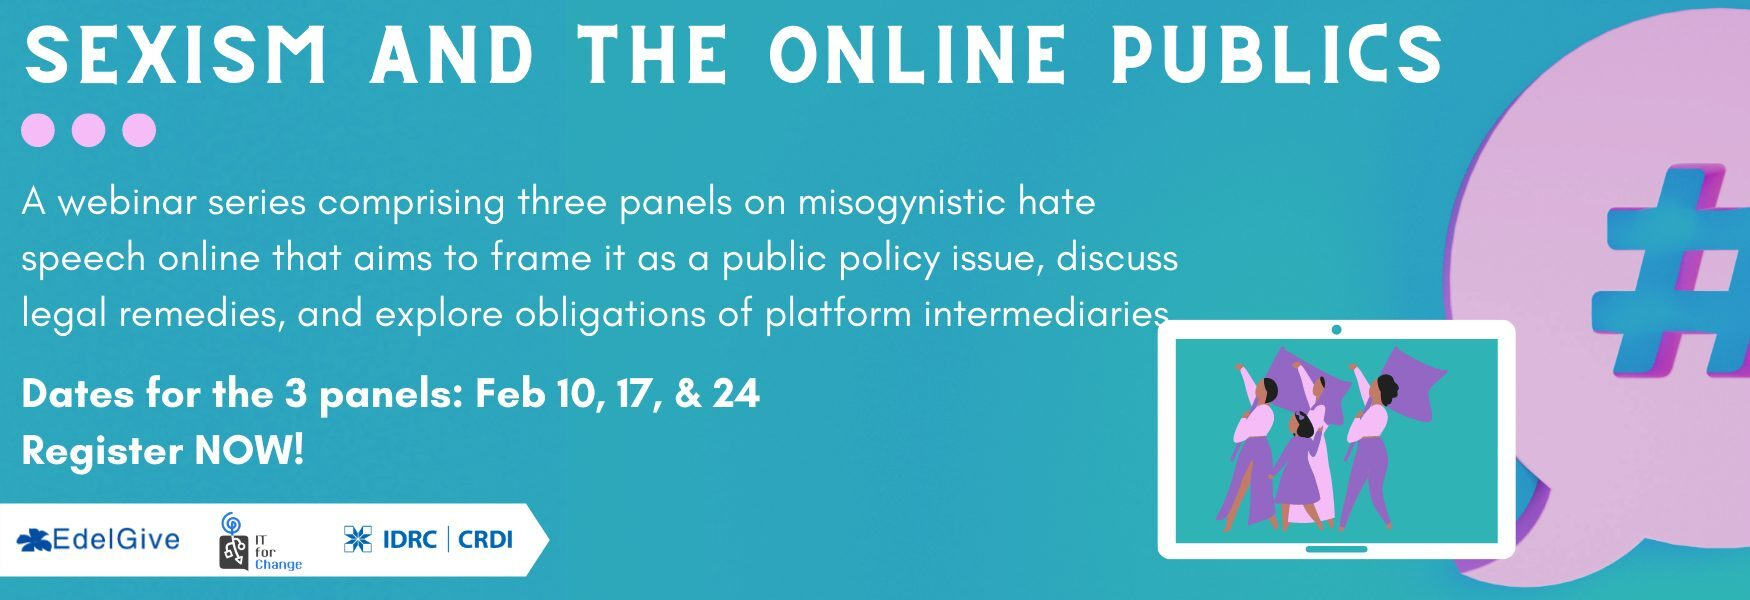 Webinar Series on Sexism and the Online Publics